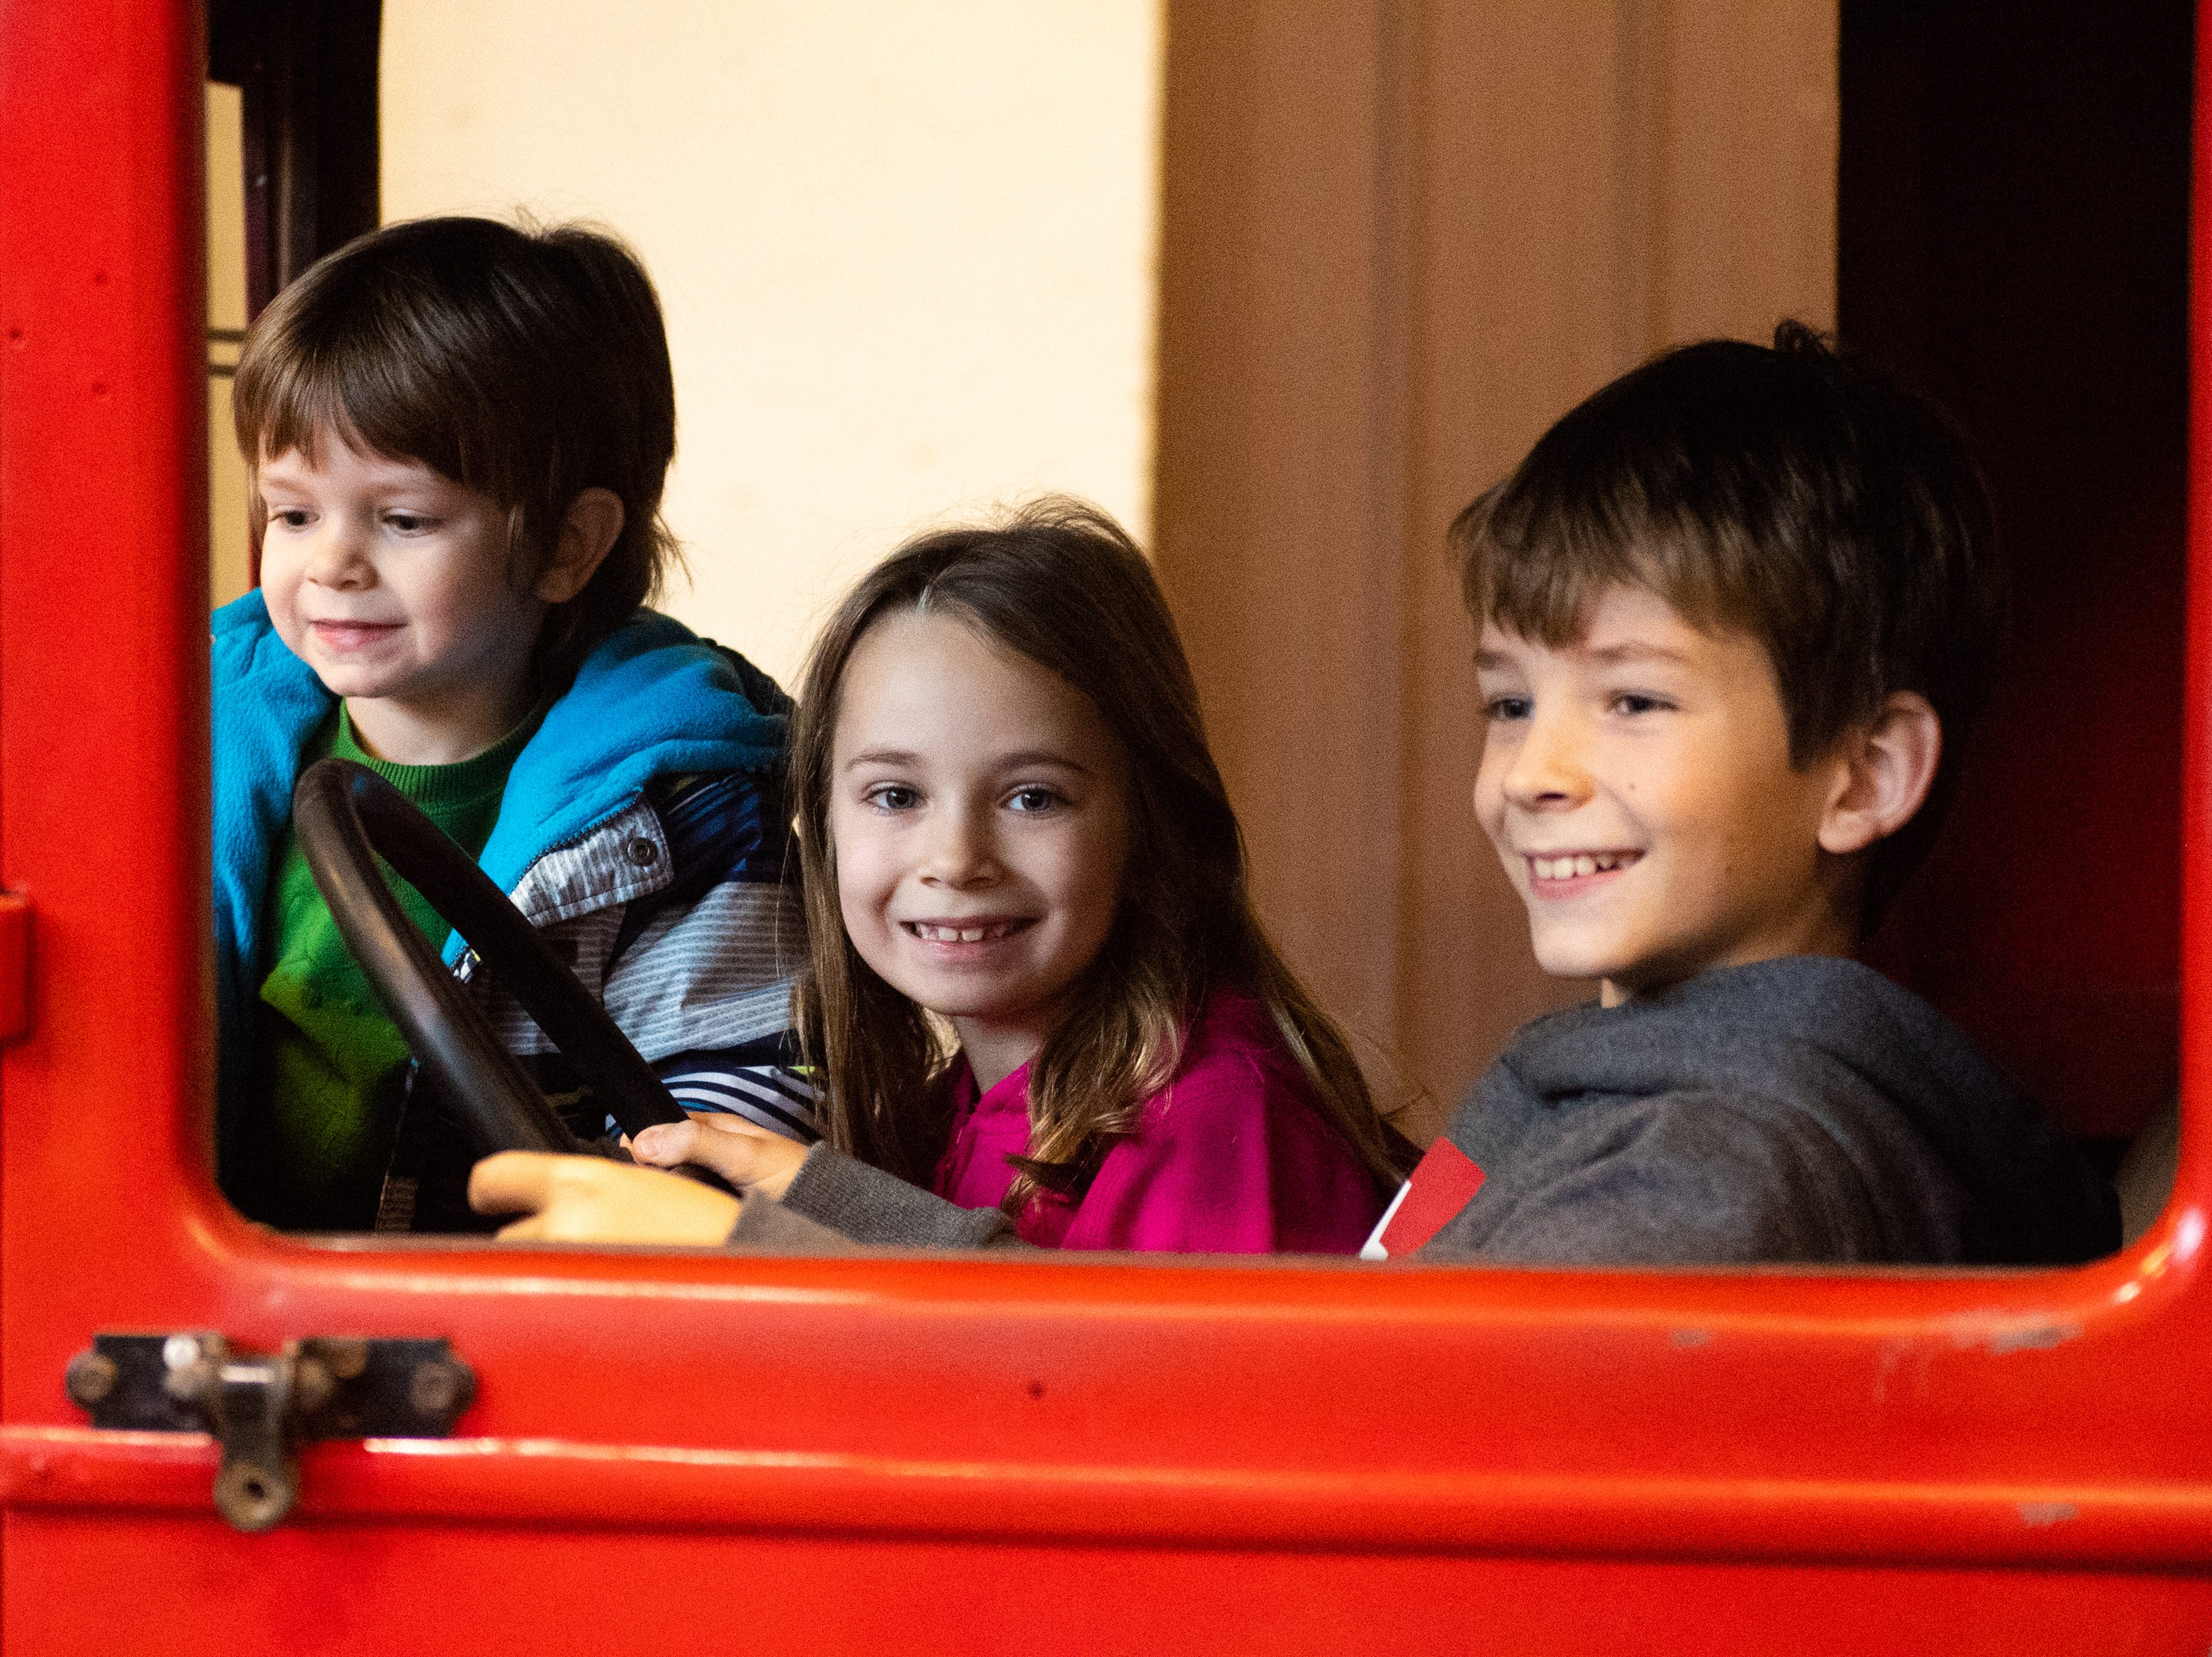 (Left to right) Garon, 4, Ada, 6, and Vonn Erdenbrack, 9, of Springettsbury Township sit in an old car during family activity day at the Agricultural and Industrial Museum, Friday, December 28, 2018.